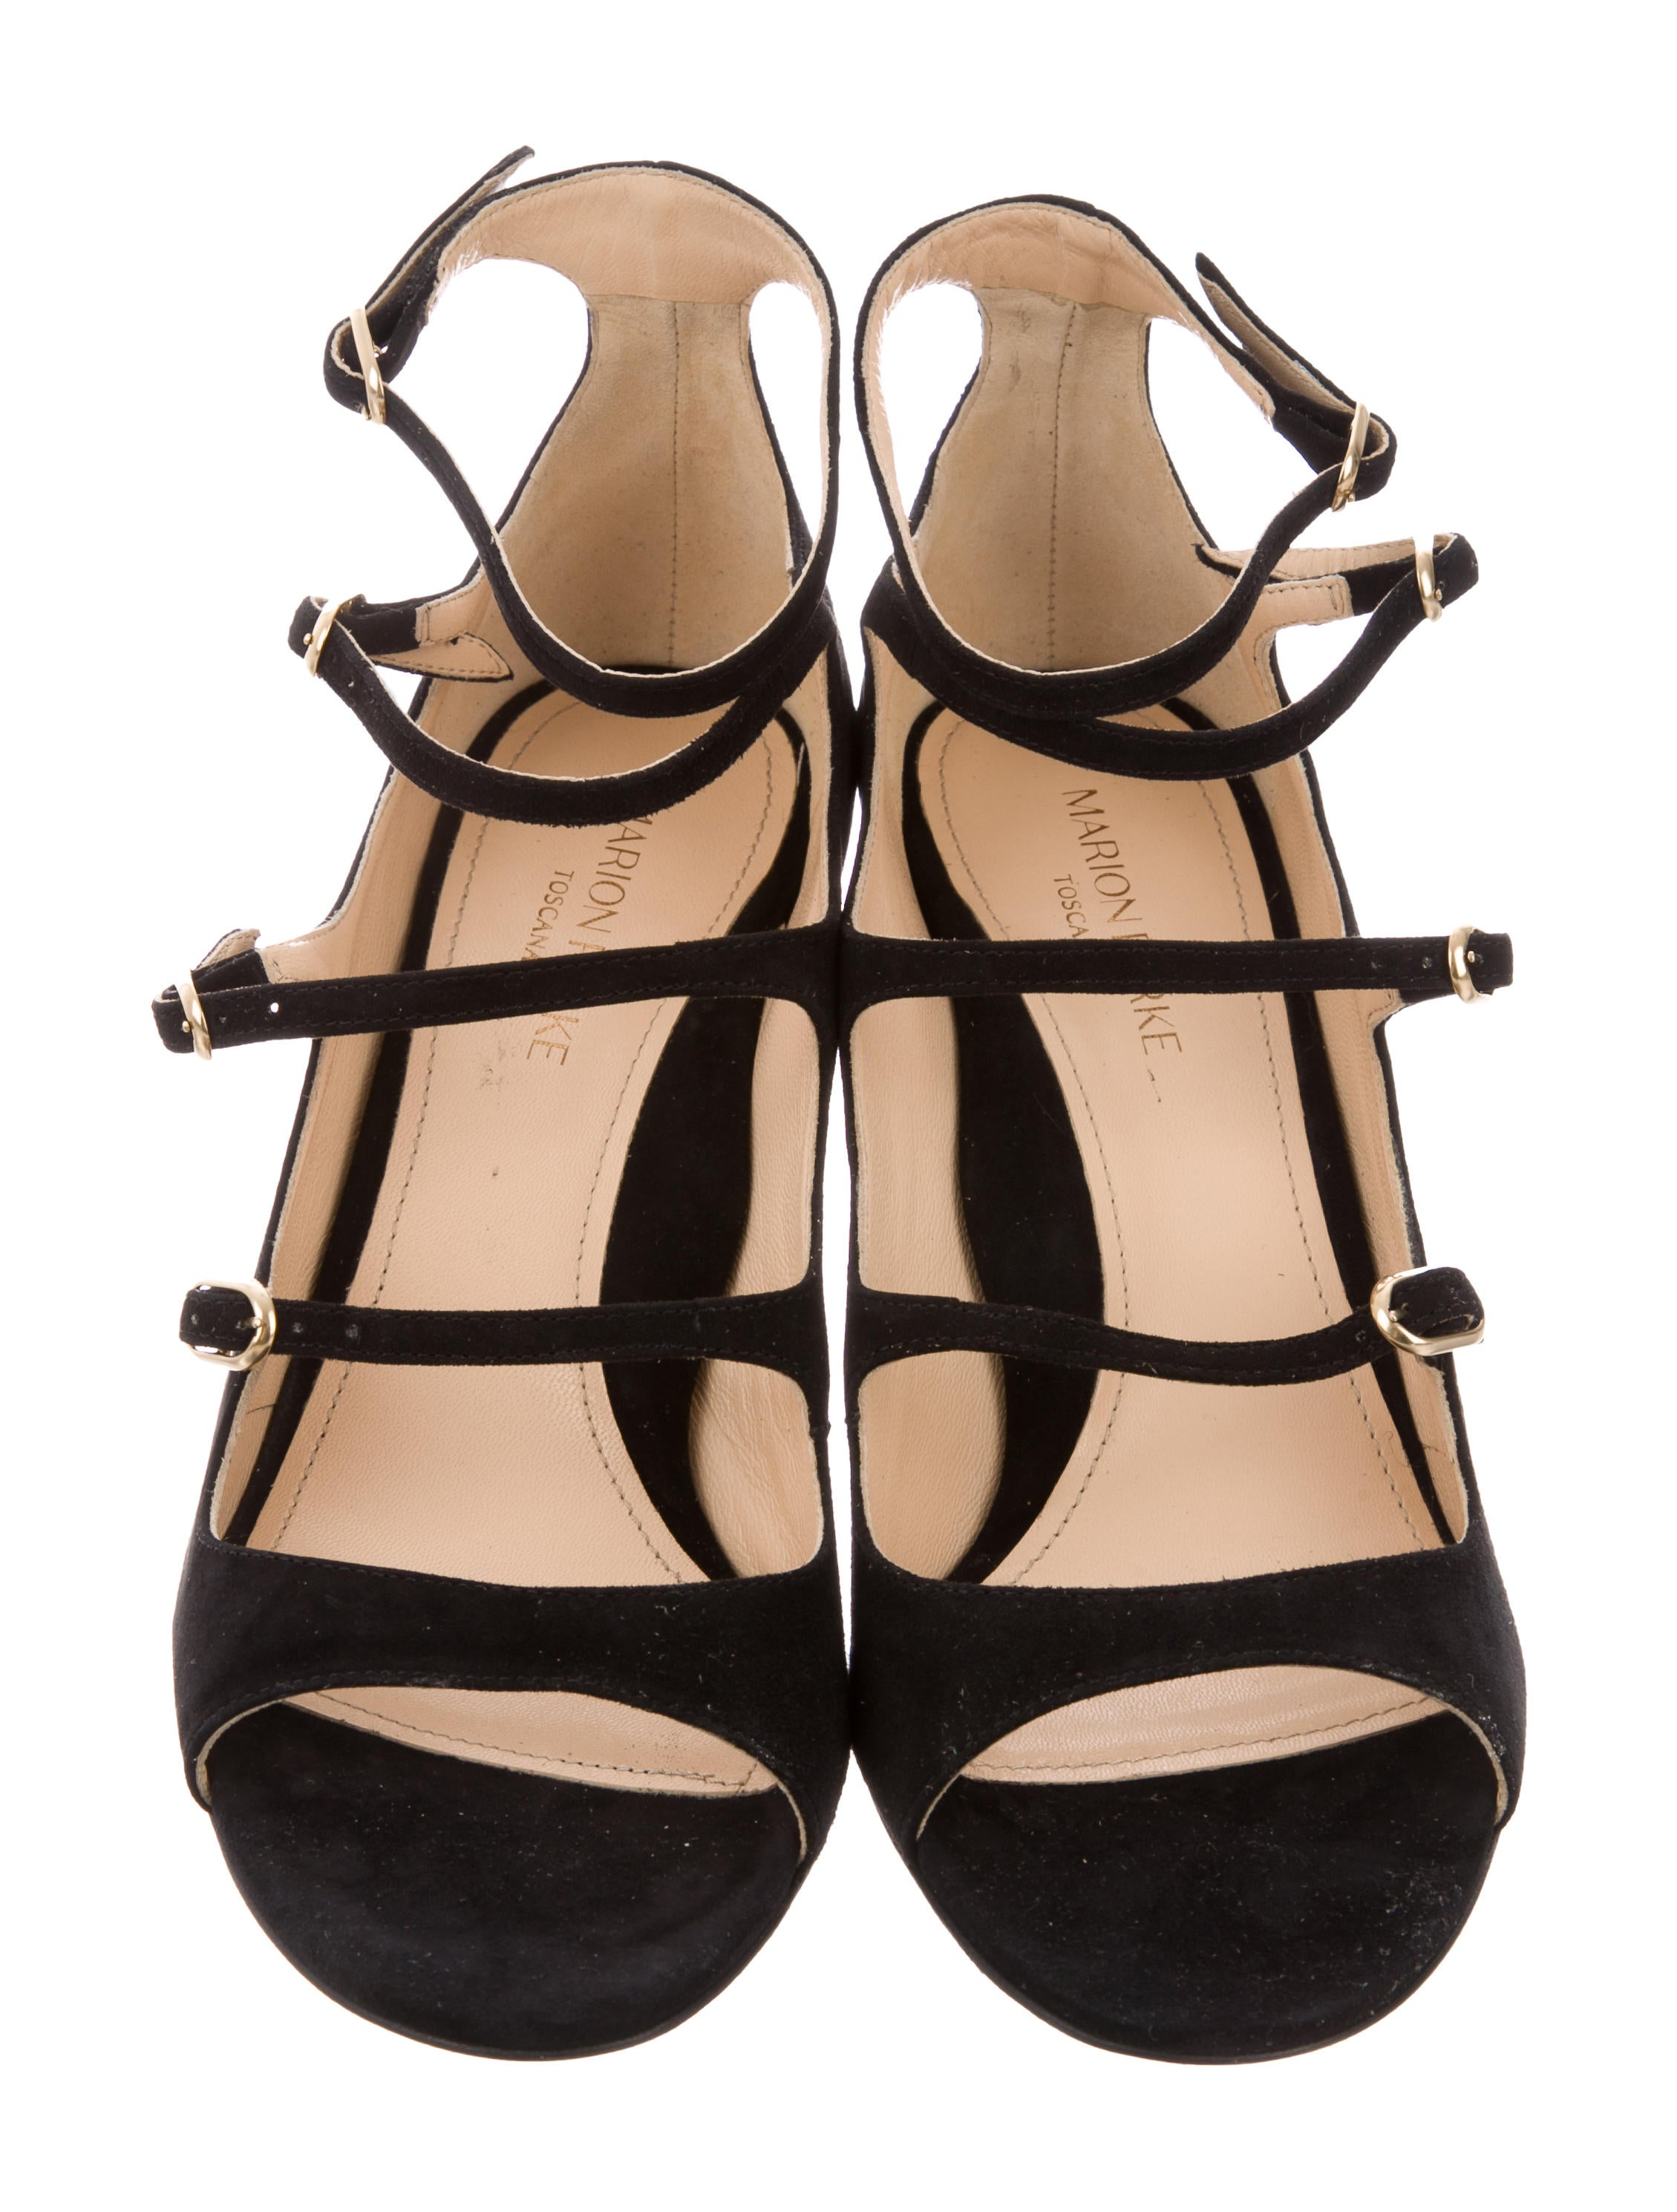 Marion Parke 2018 Bernadette Suede Sandals w/ Tags clearance nicekicks for sale buy authentic online wGx1tH